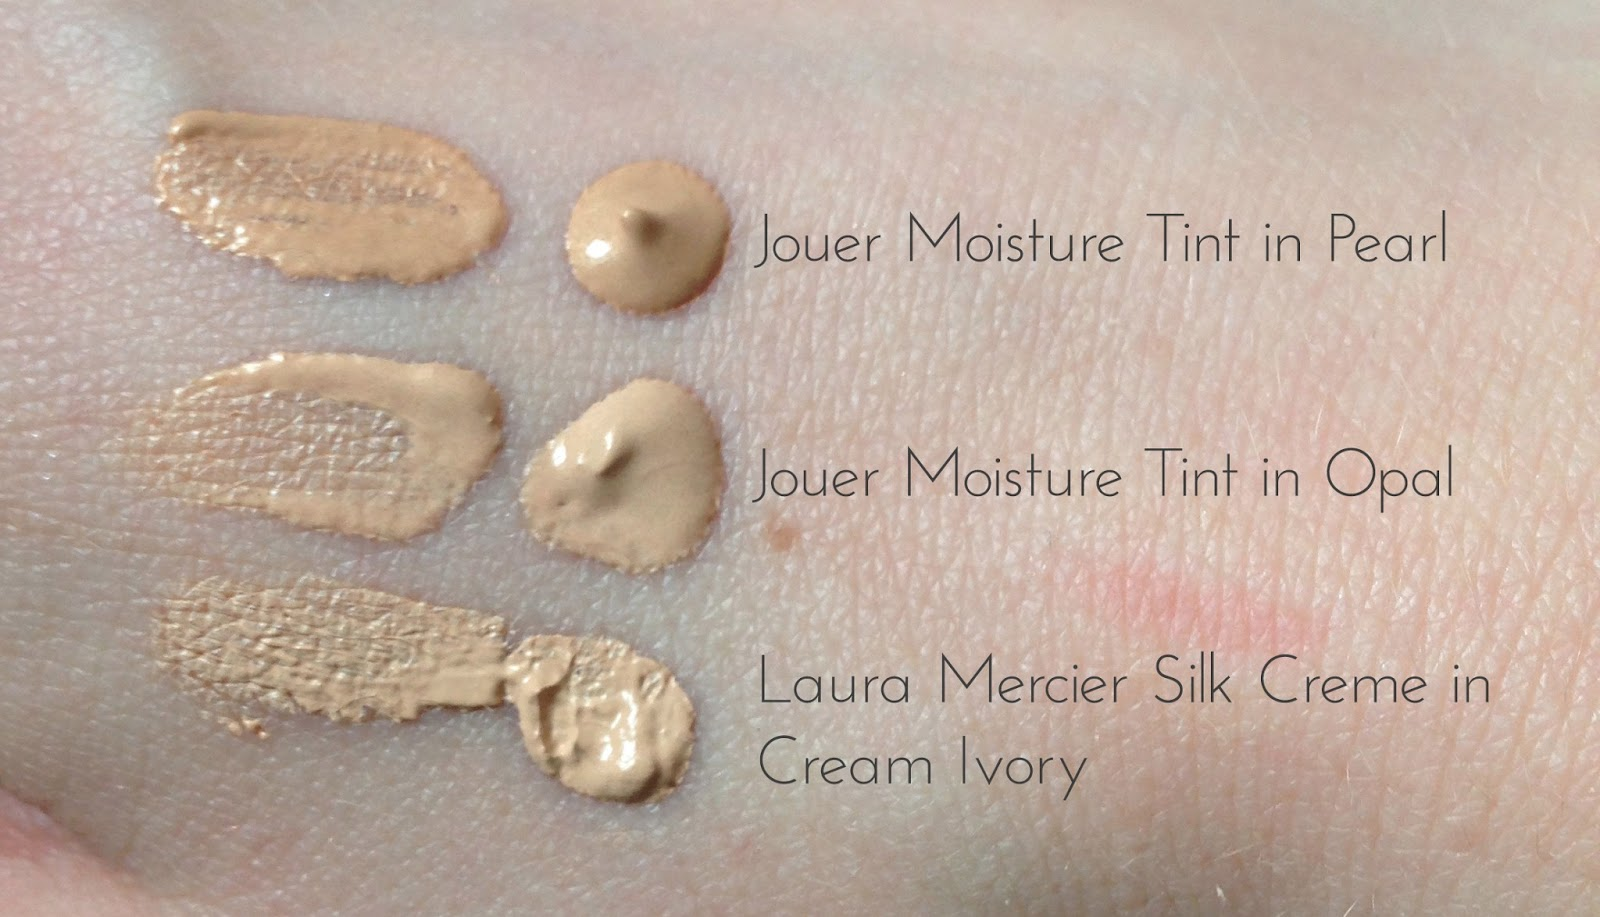 Foundation swatches, Nars Sheer Glow, Jouer Moisture Tint and Laura Mercier Silk Creme